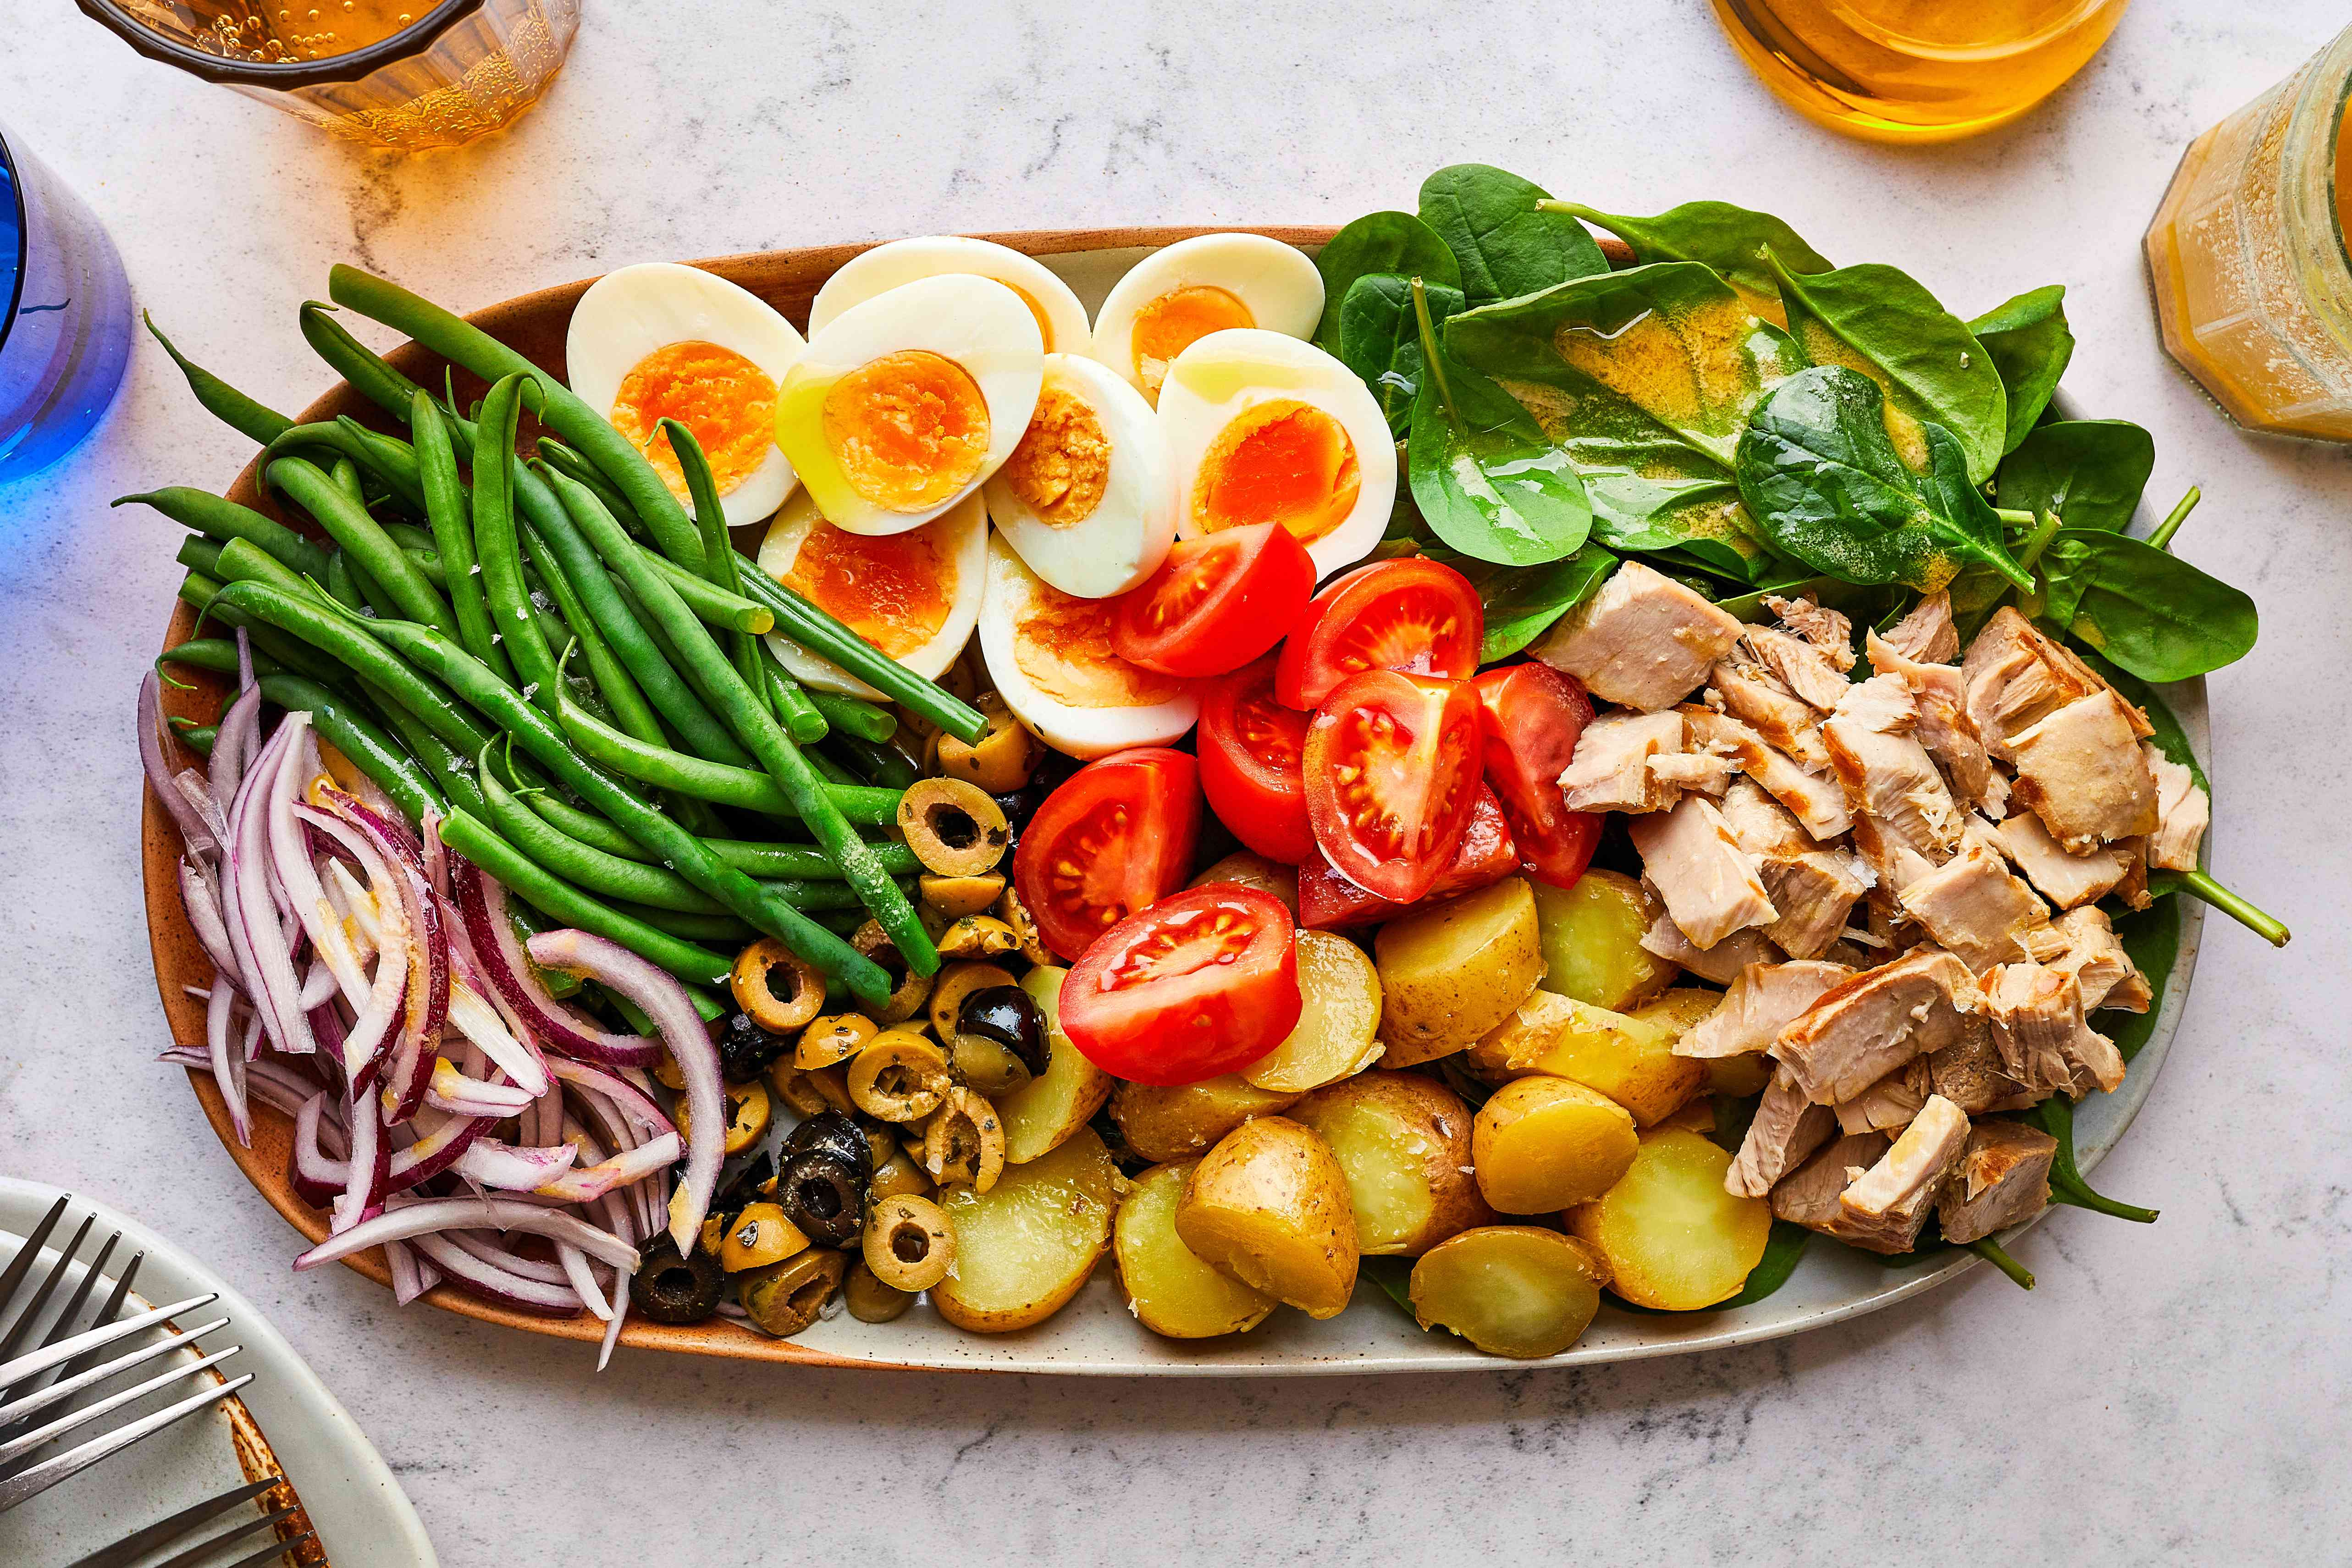 Nicoise salad with dressing on side on table